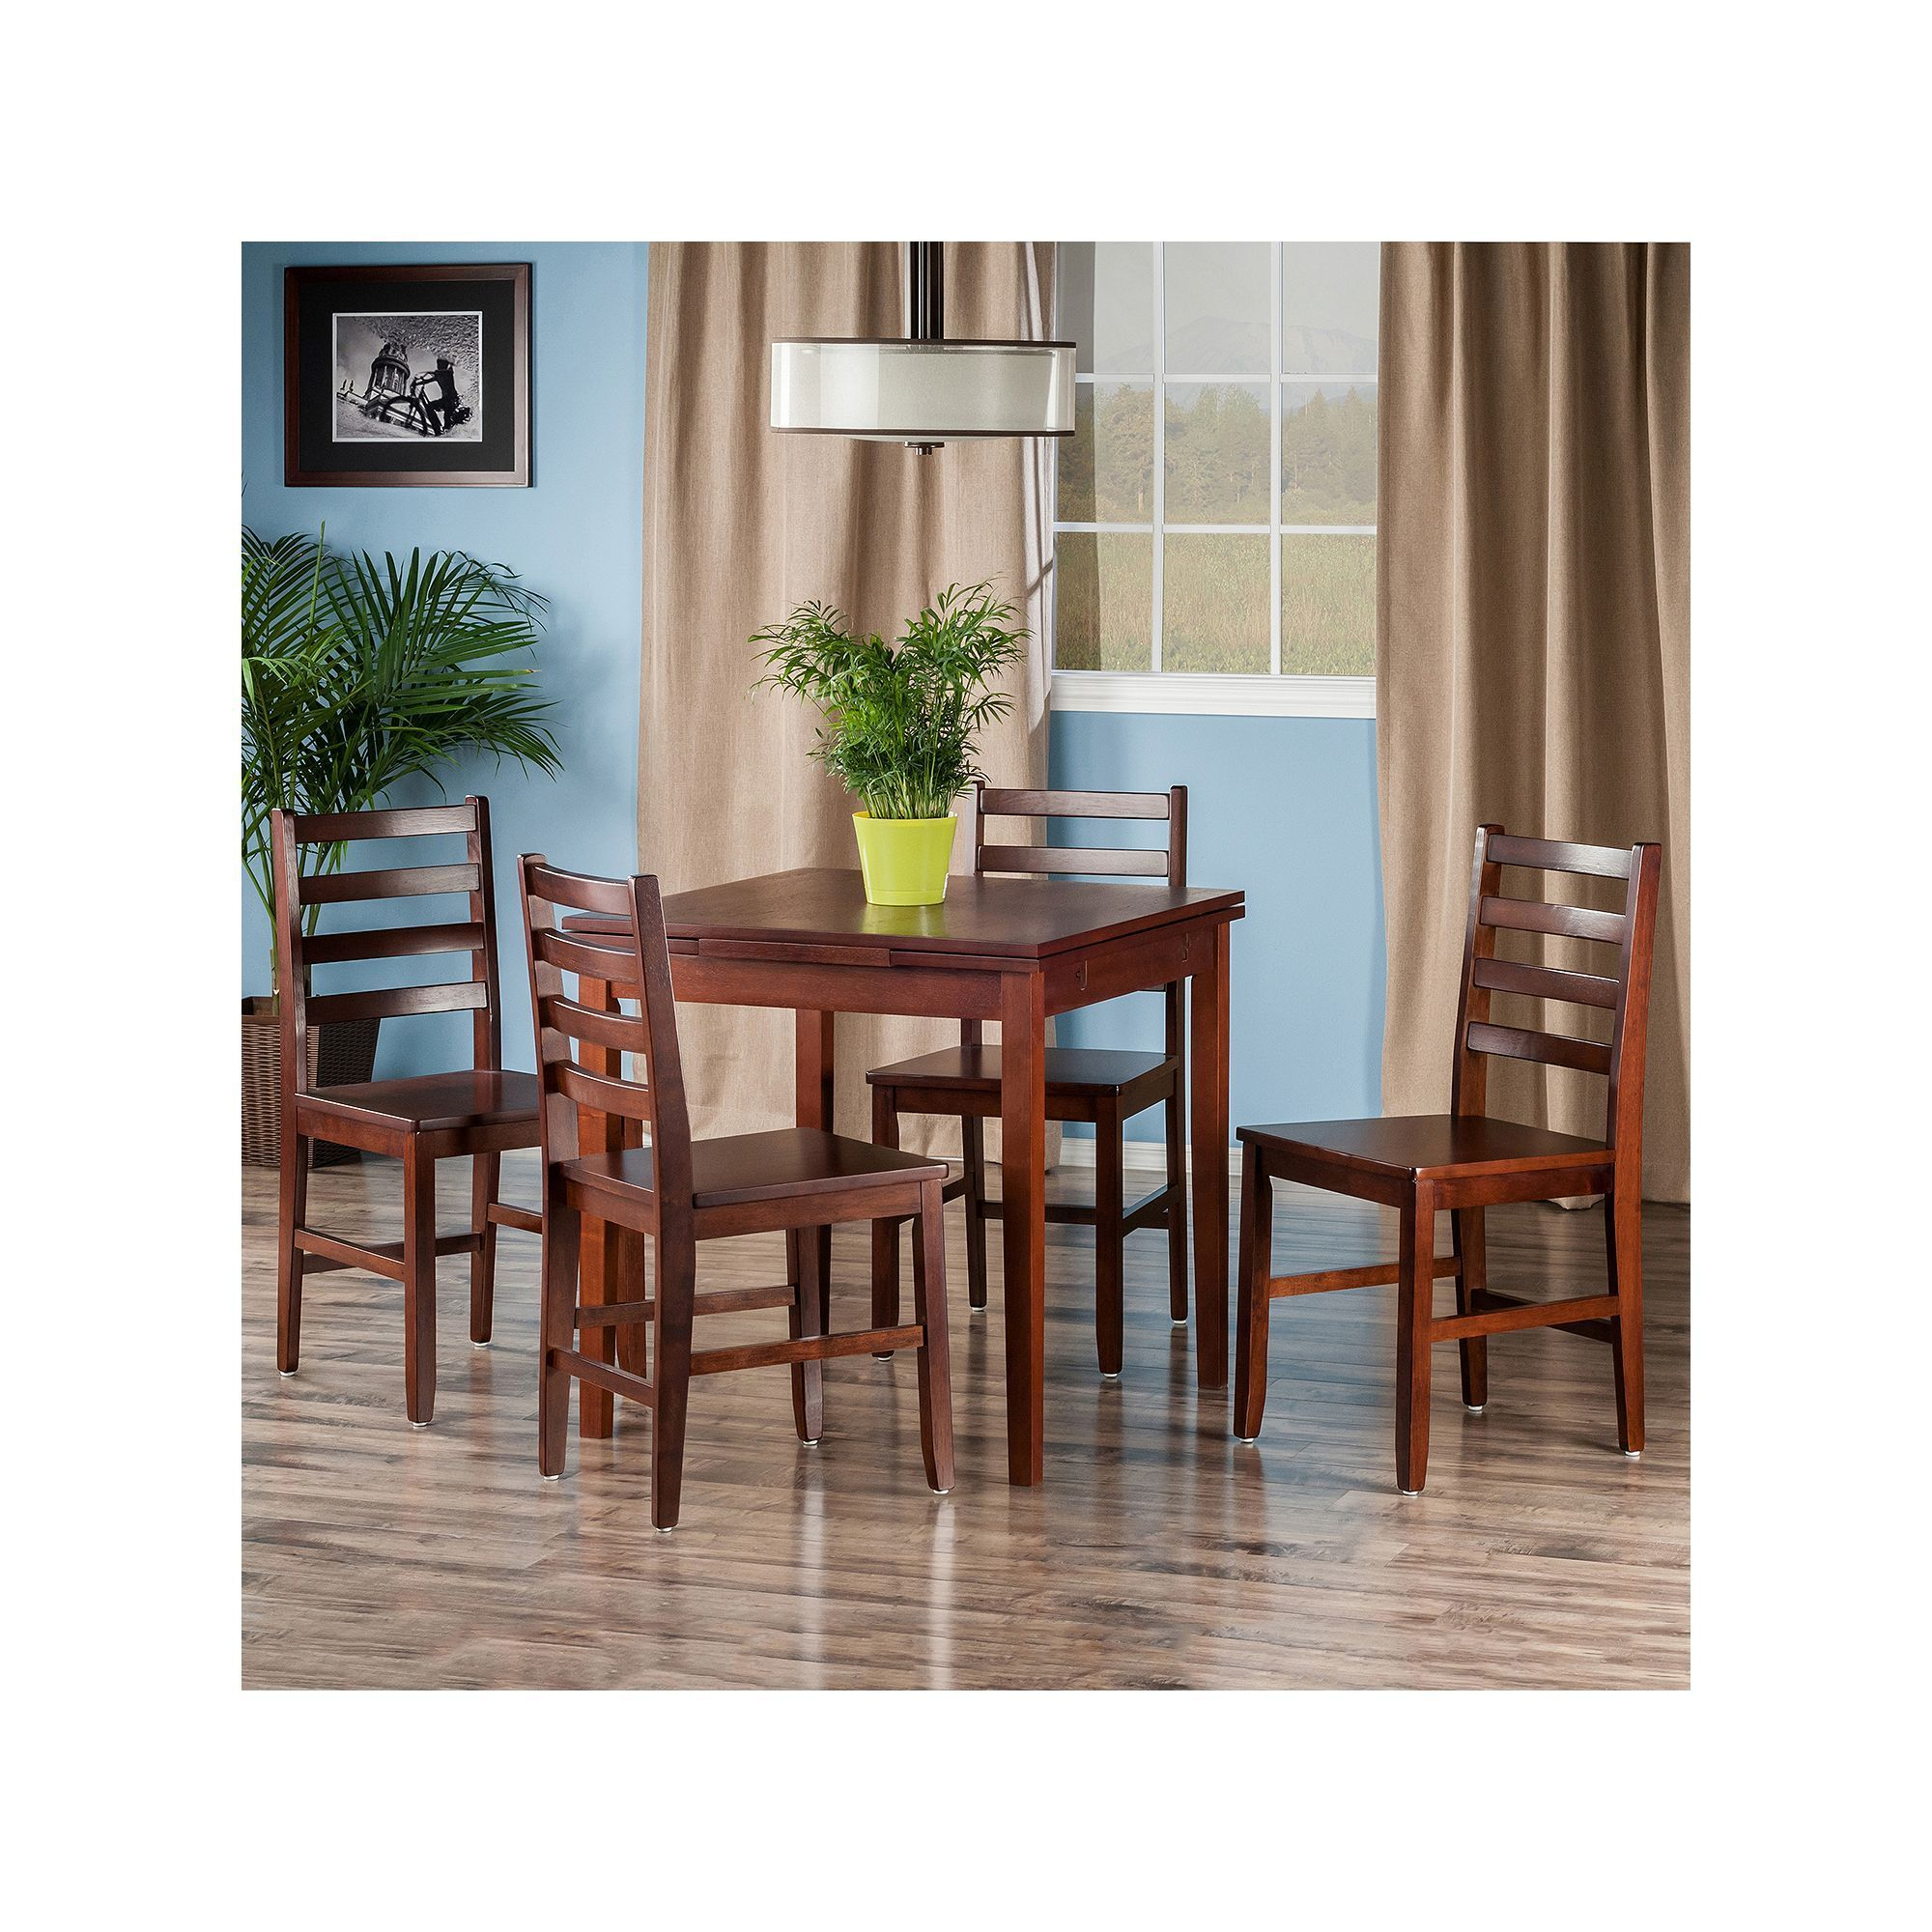 10c4c9fbfa60 Winsome Pulman Extension Table & Ladder Back Chair 5-piece Set, Brown Oth